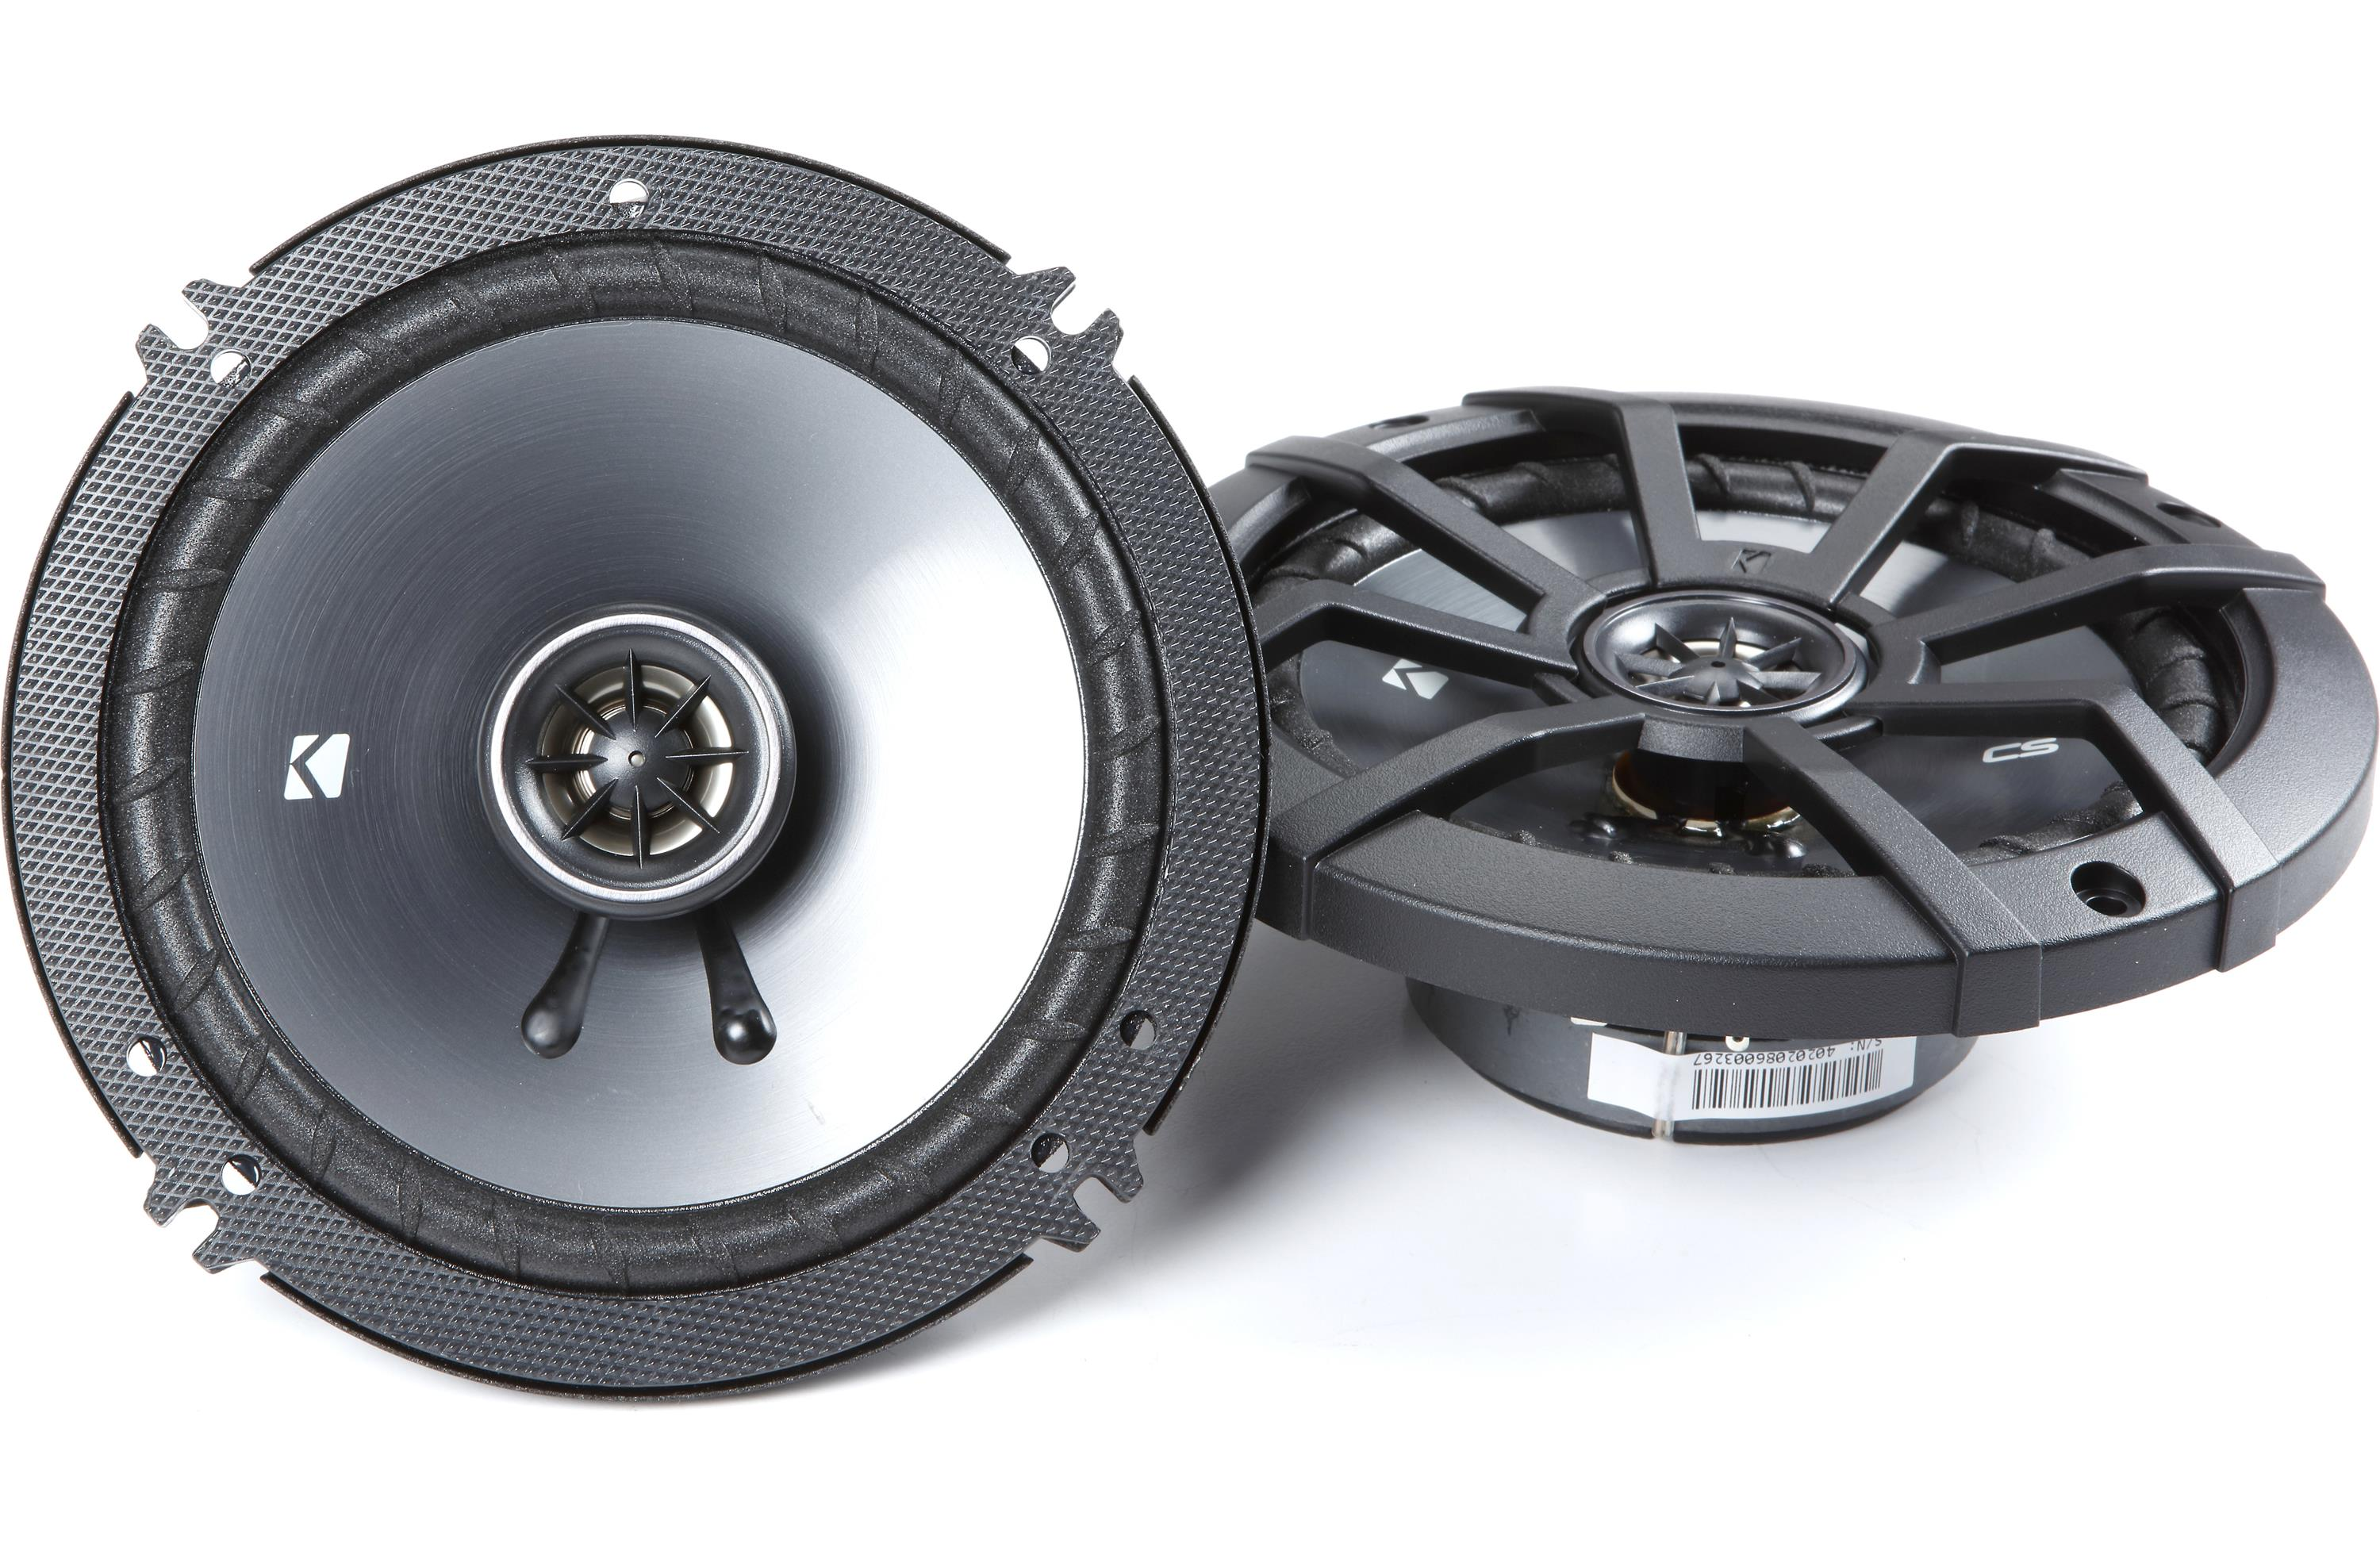 Kicker BOGOH!Buy a set of Kicker car speakers, save 50% on a 2nd set